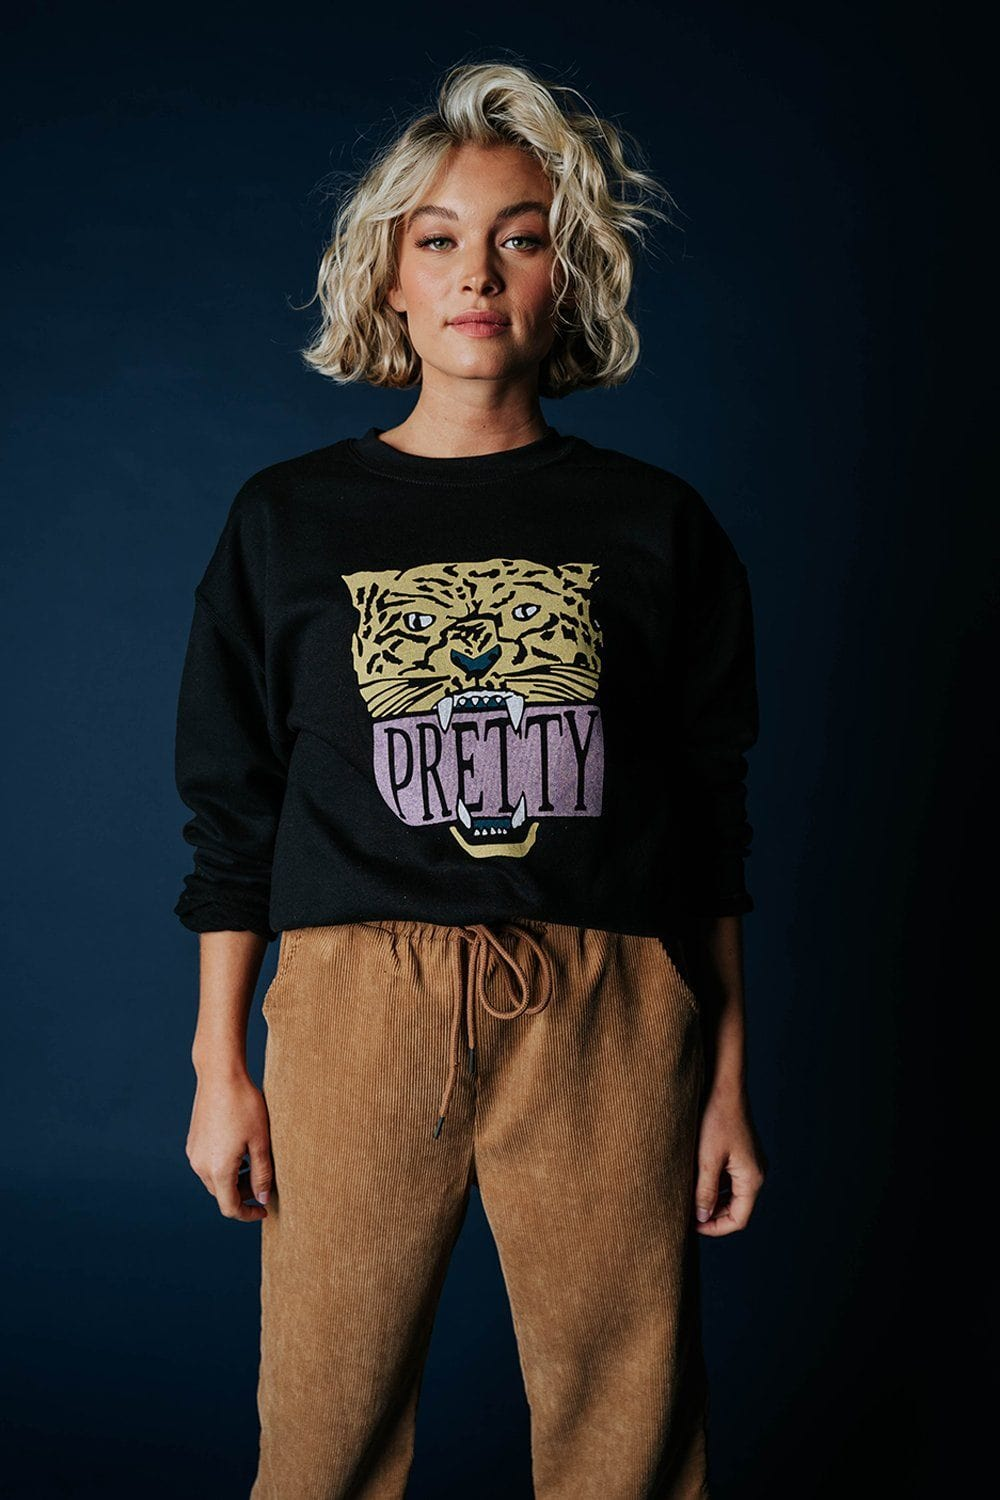 Pretty Feisty Pullover in Black Top WKNDER Clad and Cloth